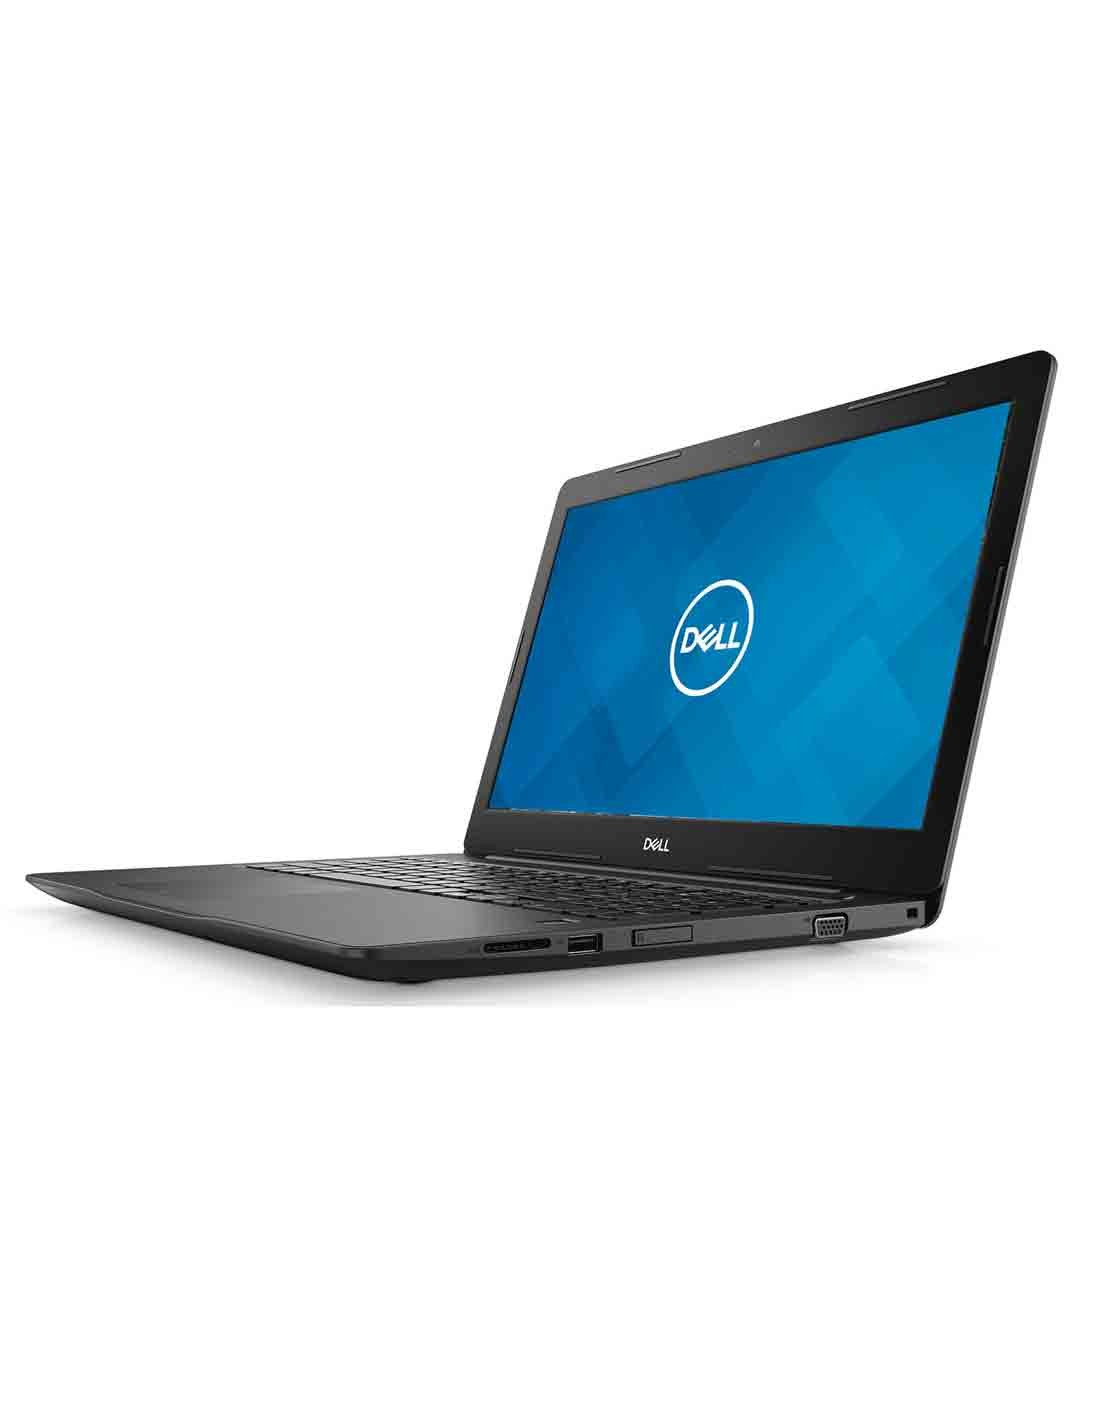 Dell Latitude 3590 Laptop i7 at the most affordable price and fast free delivery in Dubai, UAE